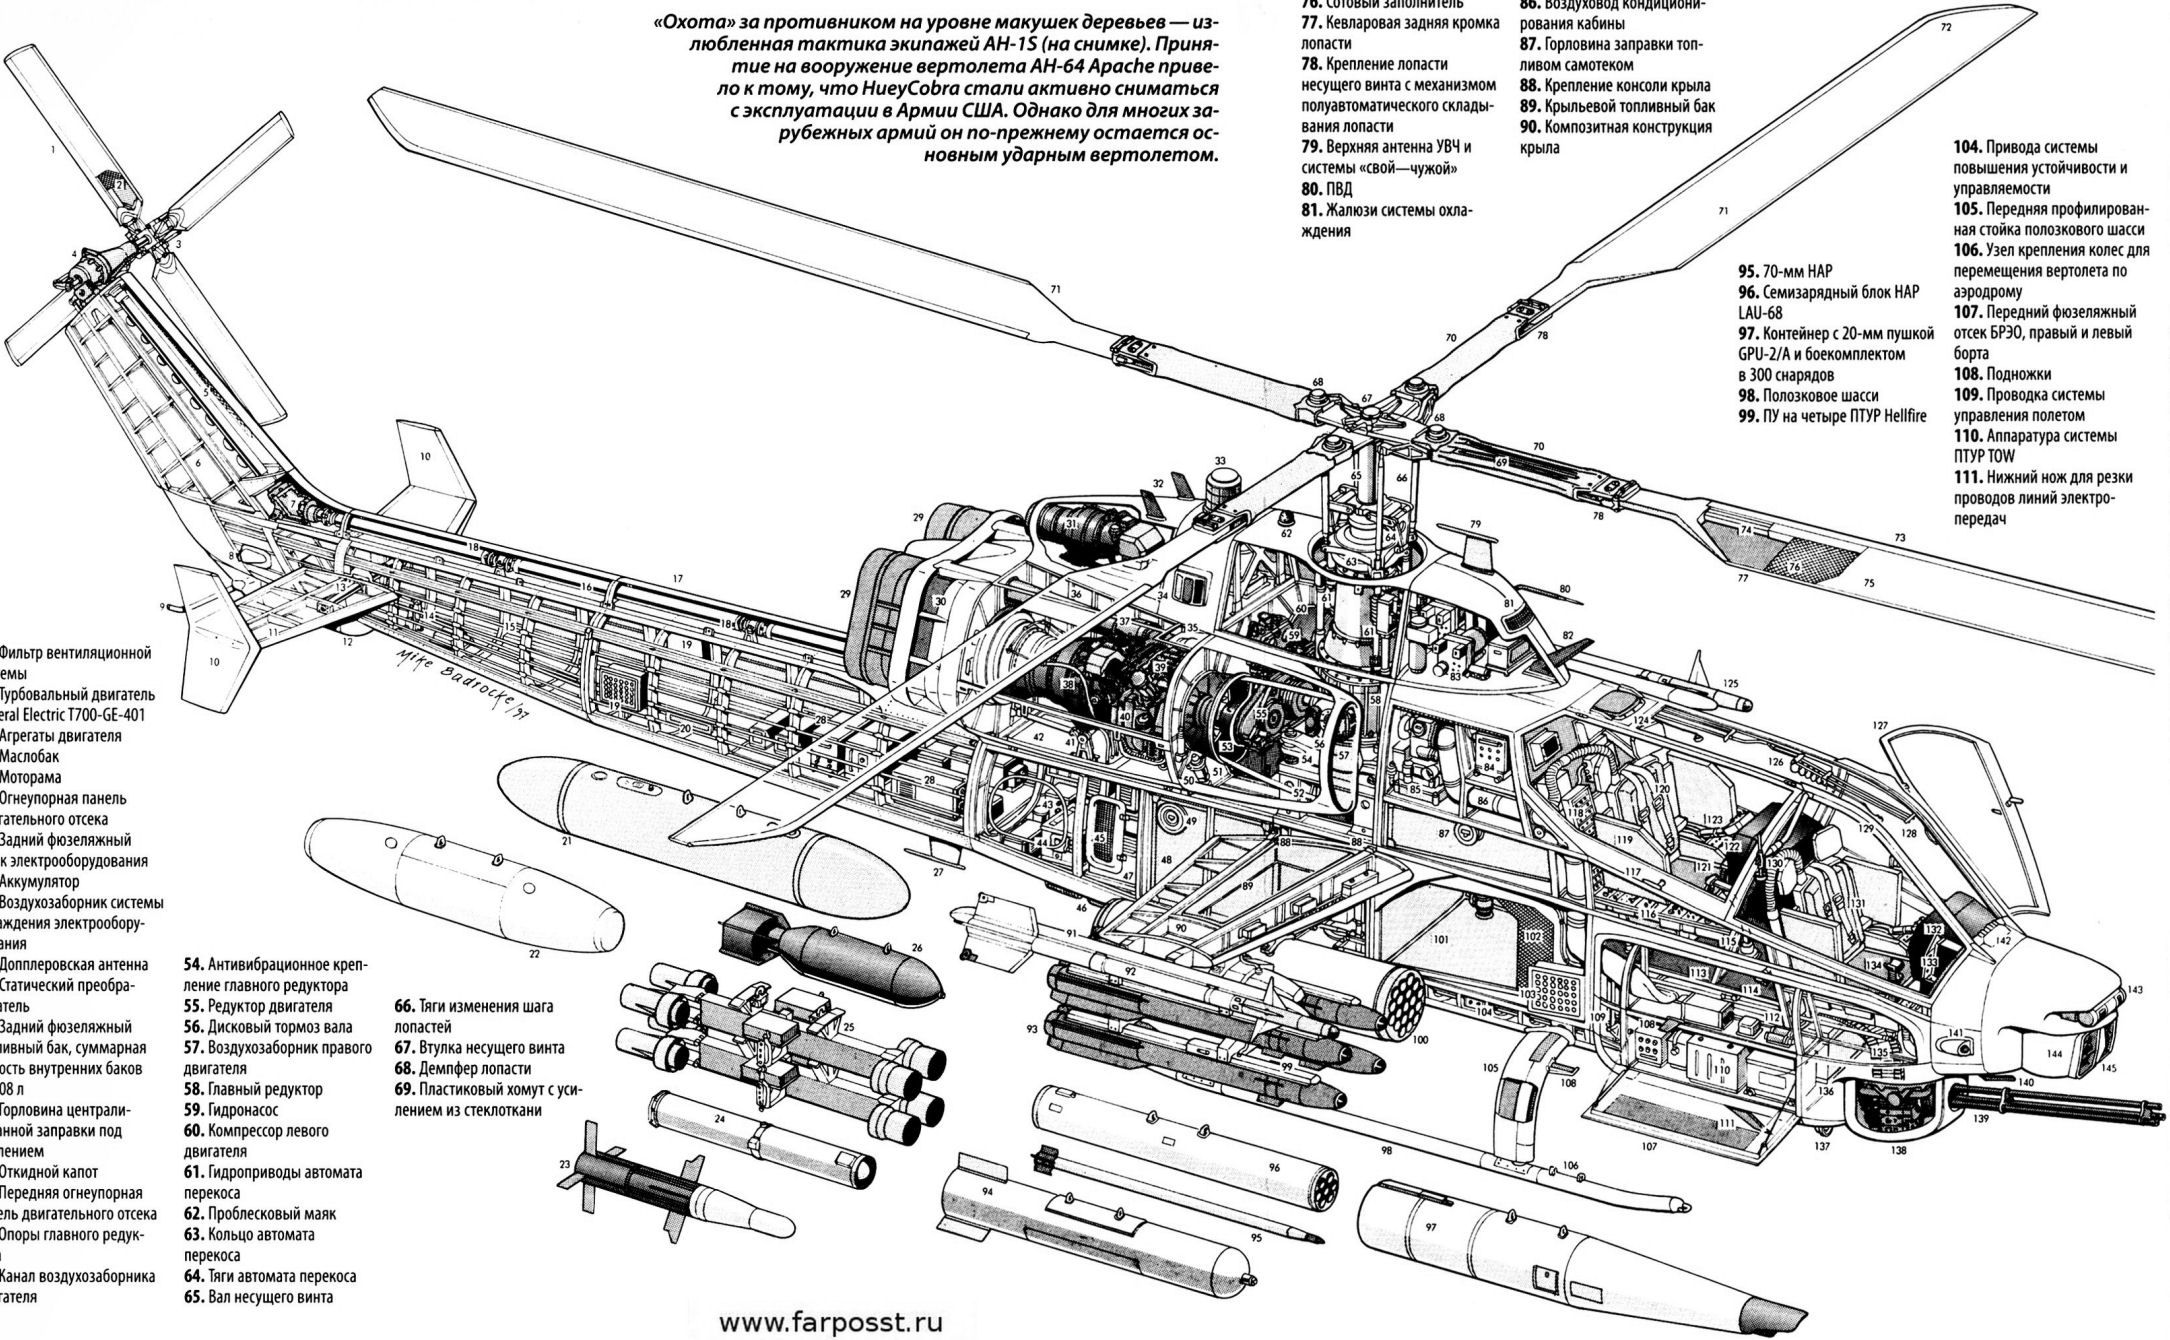 ah 1w cutaway attack helicopter military helicopter military aircraft military weapons  [ 2170 x 1340 Pixel ]